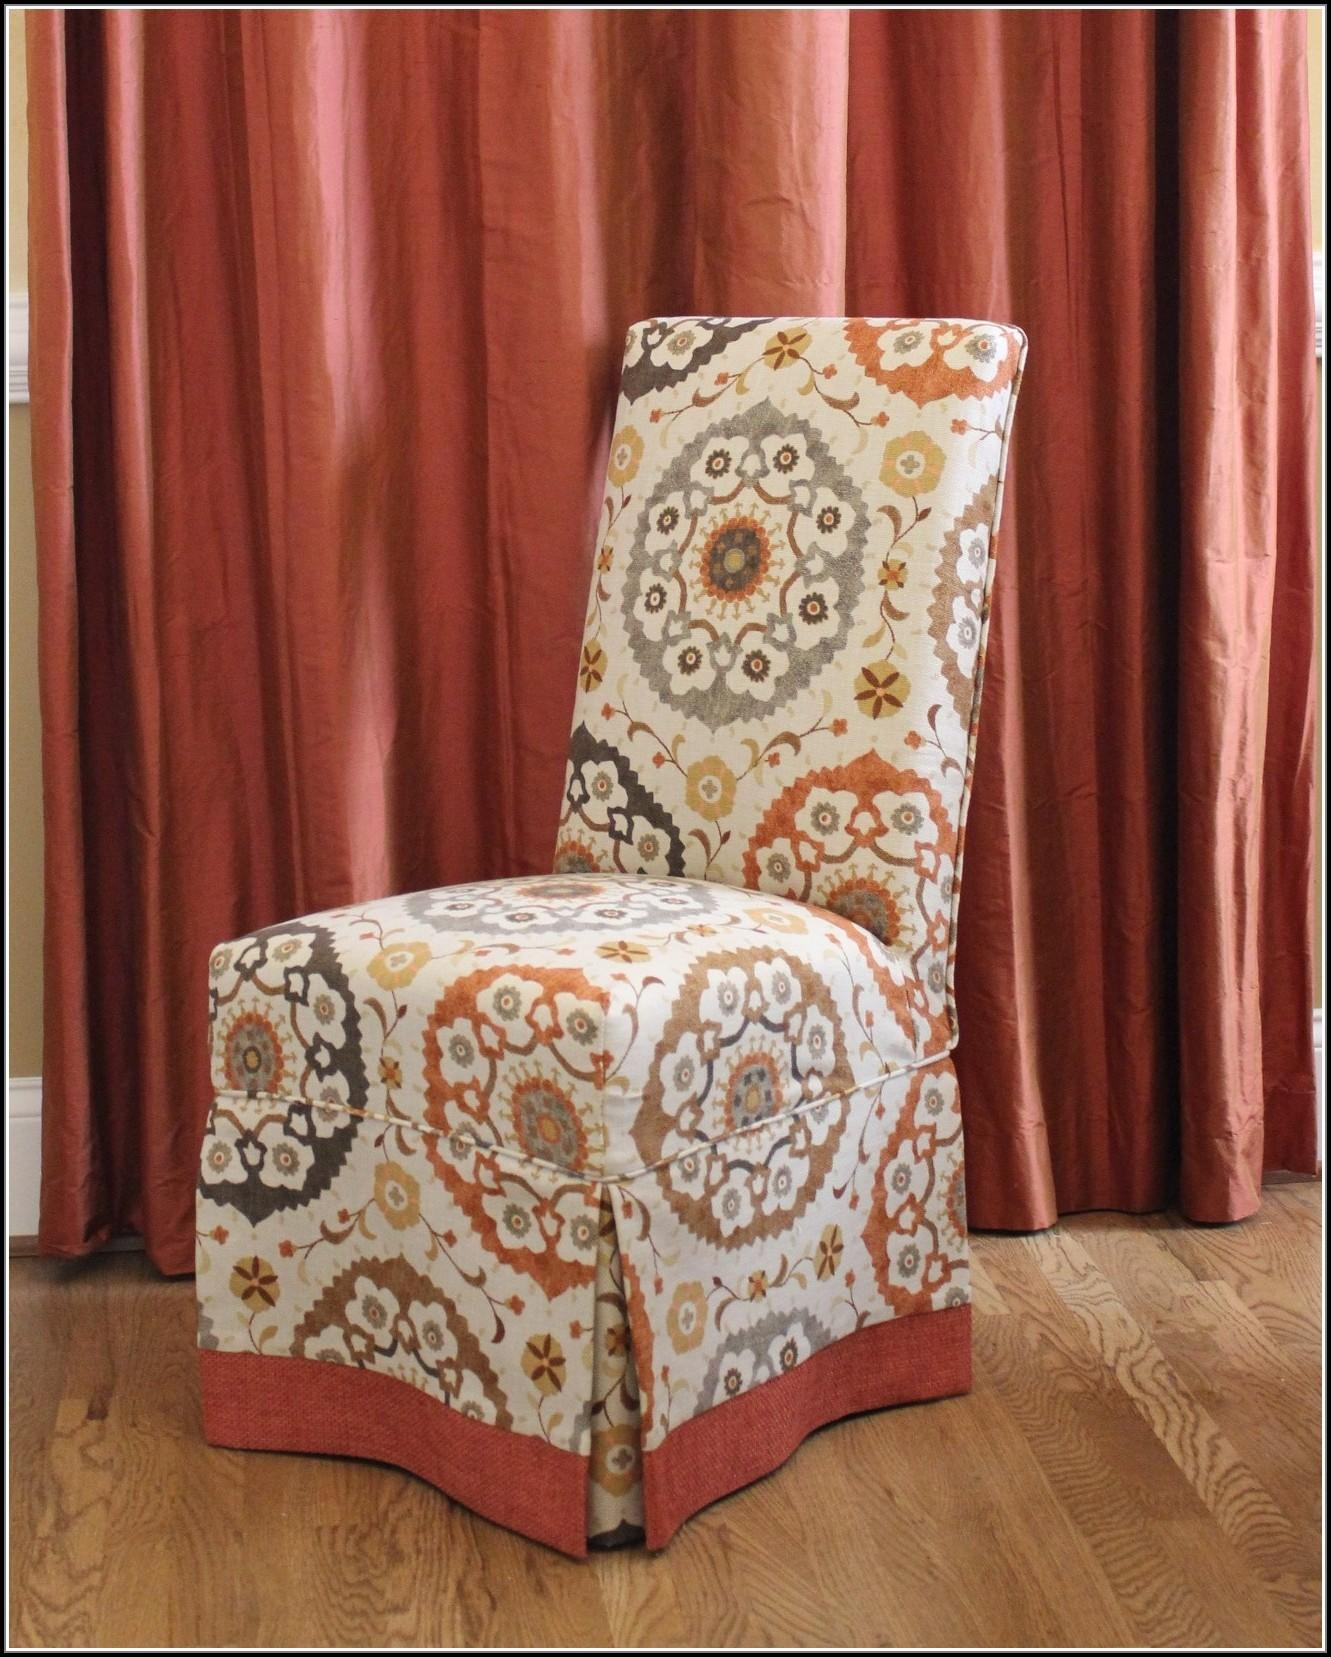 pottery barn dining chair covers vintage metal 2018 latest slipcovers sofa ideas